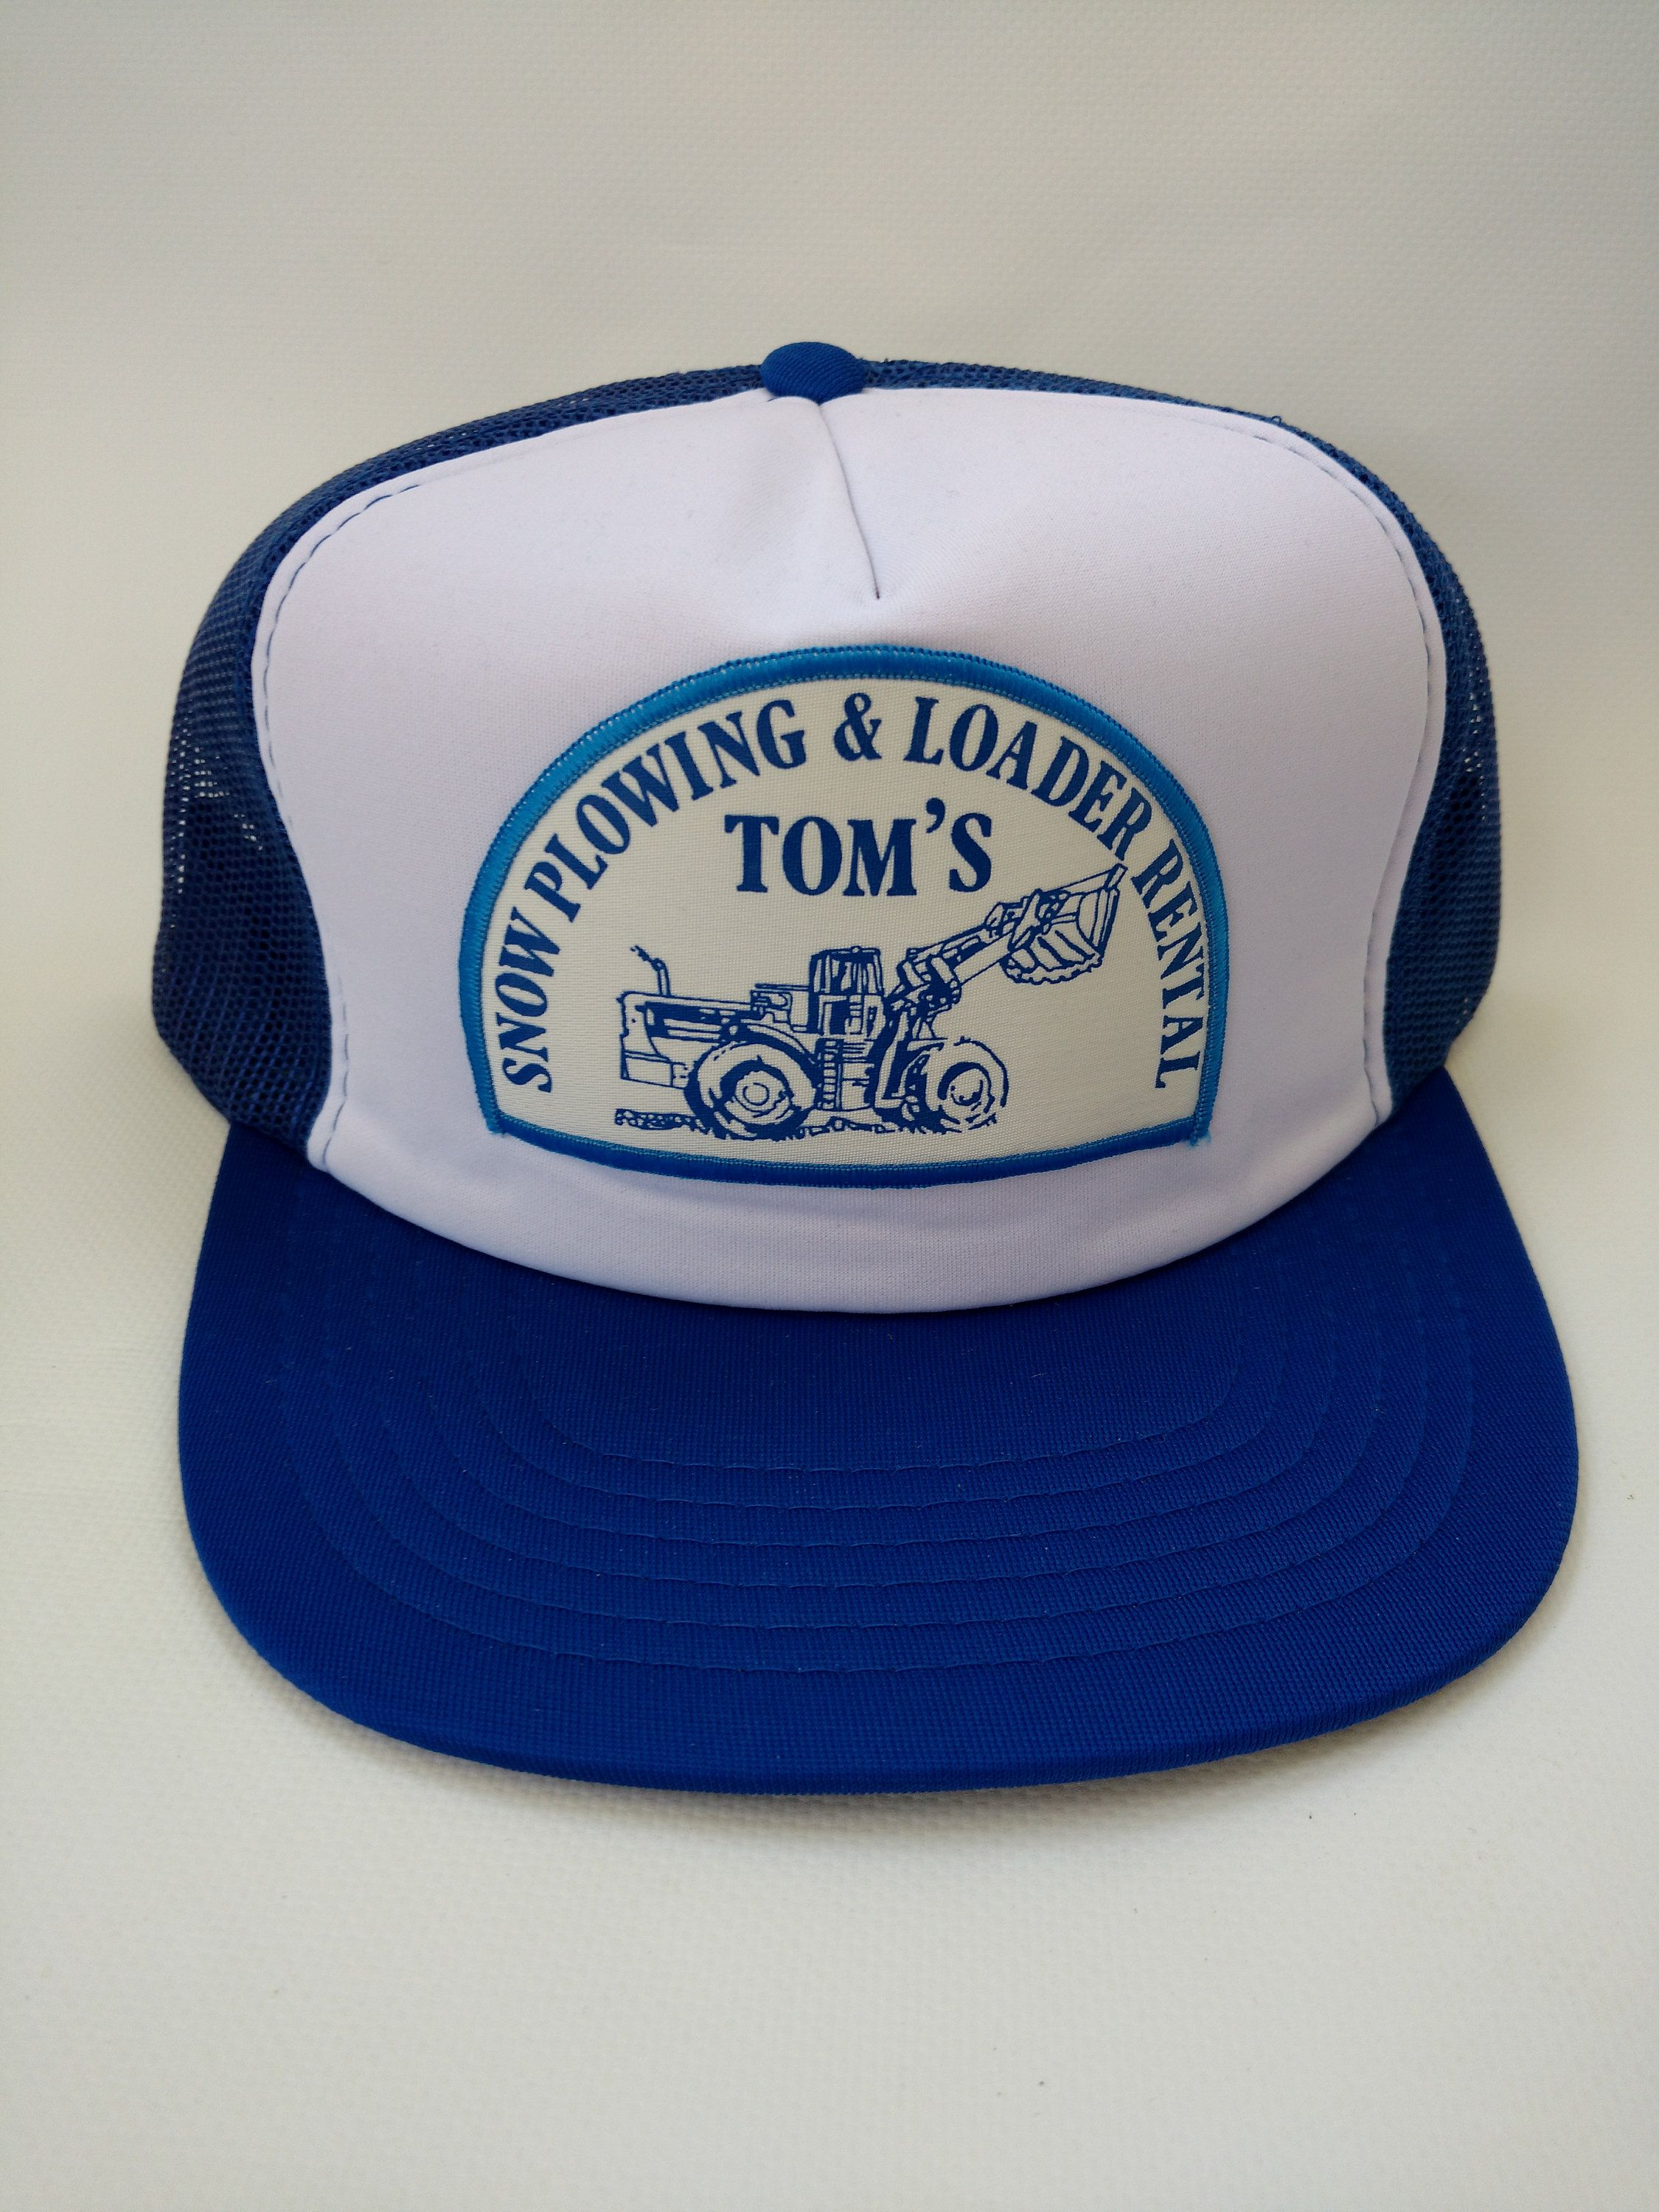 34a0be86daf Trucker Hat Tom s Snow Plowing and Loader Rental Blue Retro Vintage  Snapback Mesh Cap 1980s by